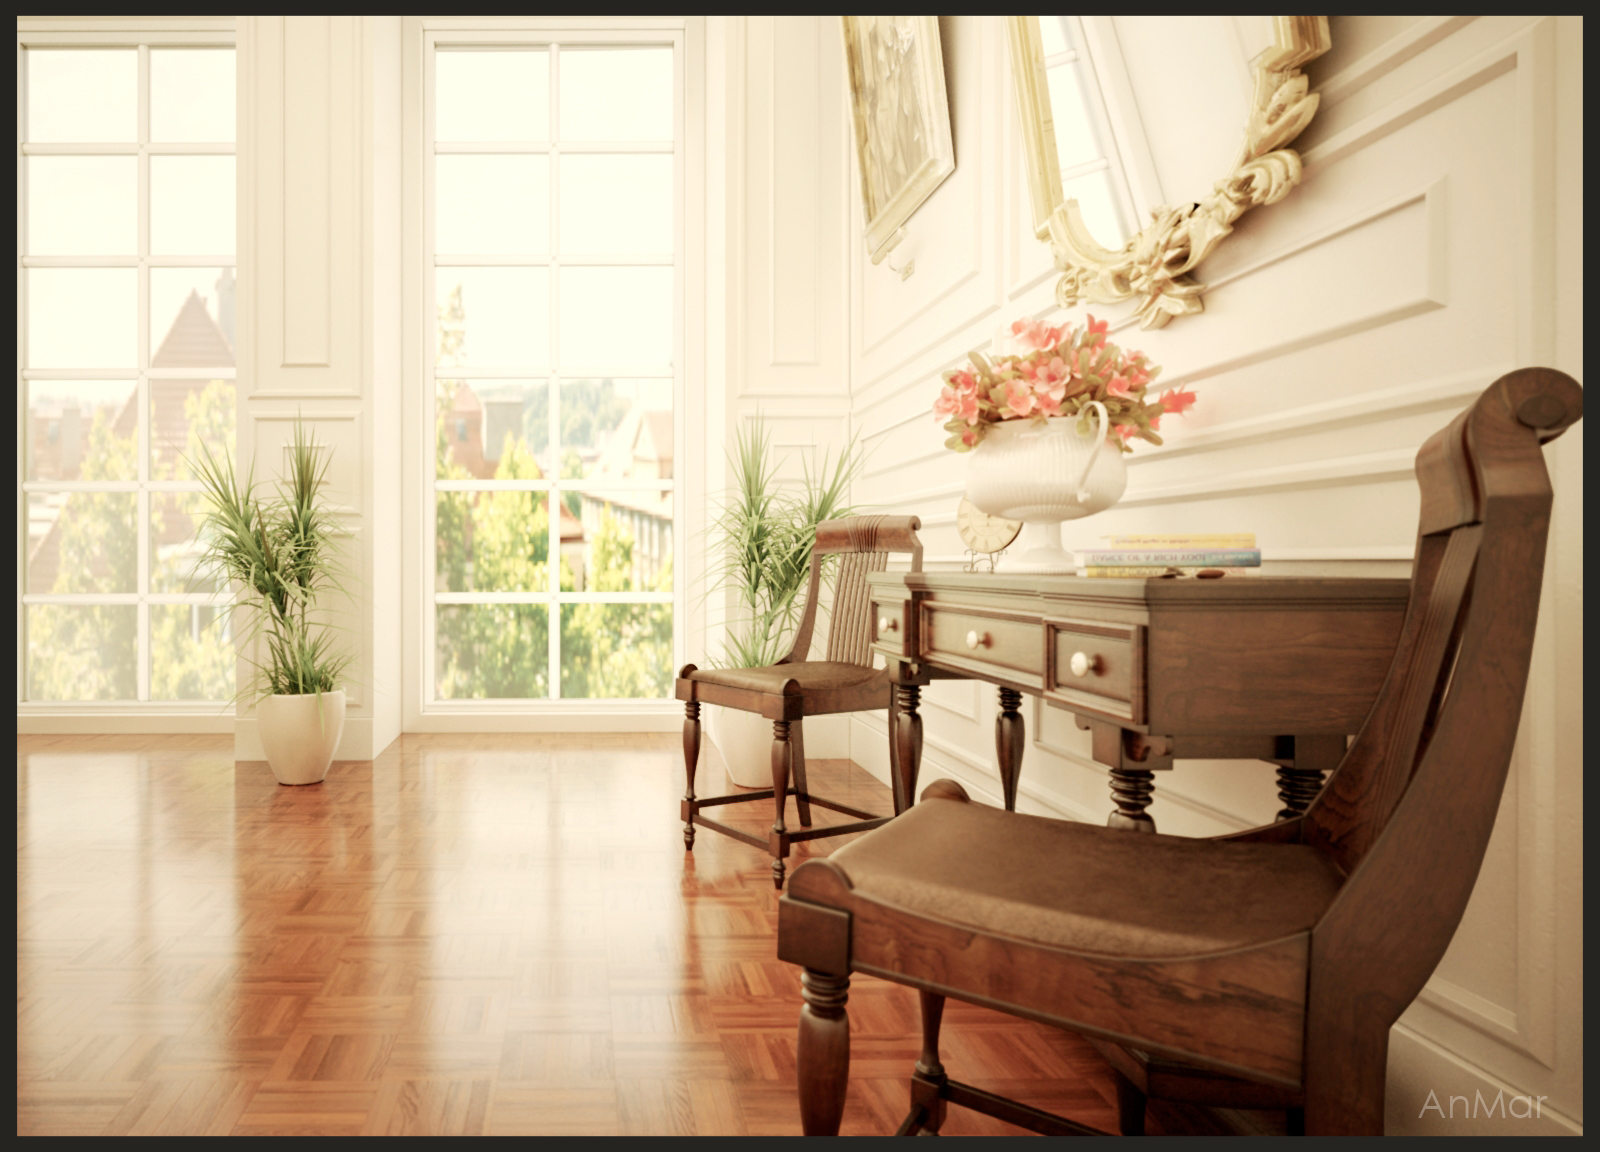 neoclassical style of art  property spotlight luxury living in the neoclassical style luxury defined  showcases five elegant homes inspired by the neoclassical movement  art  meets architecture in the world's newest galleries art & the artist.